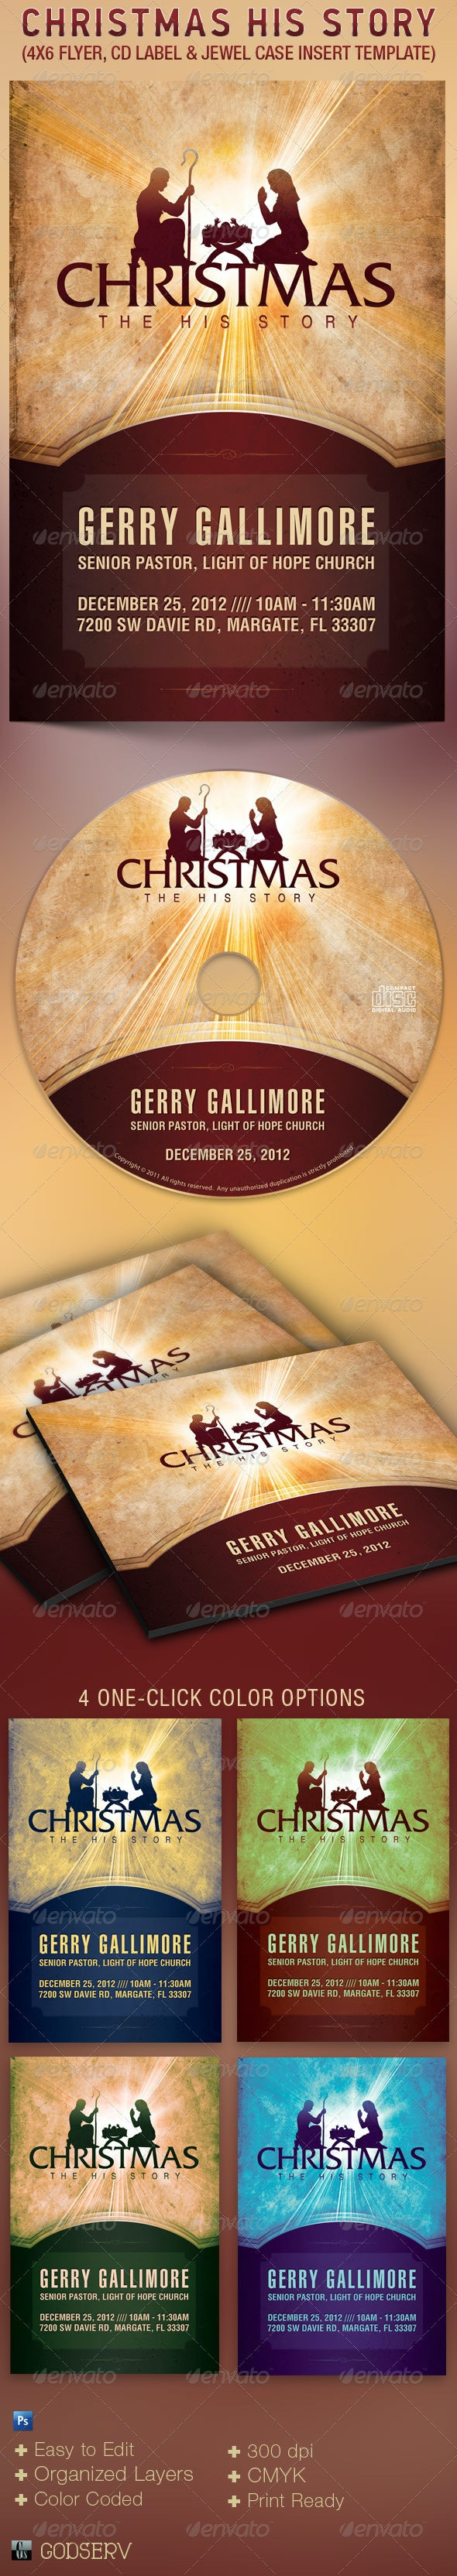 Christmas Story Flyer CD Label Template - Church Flyers